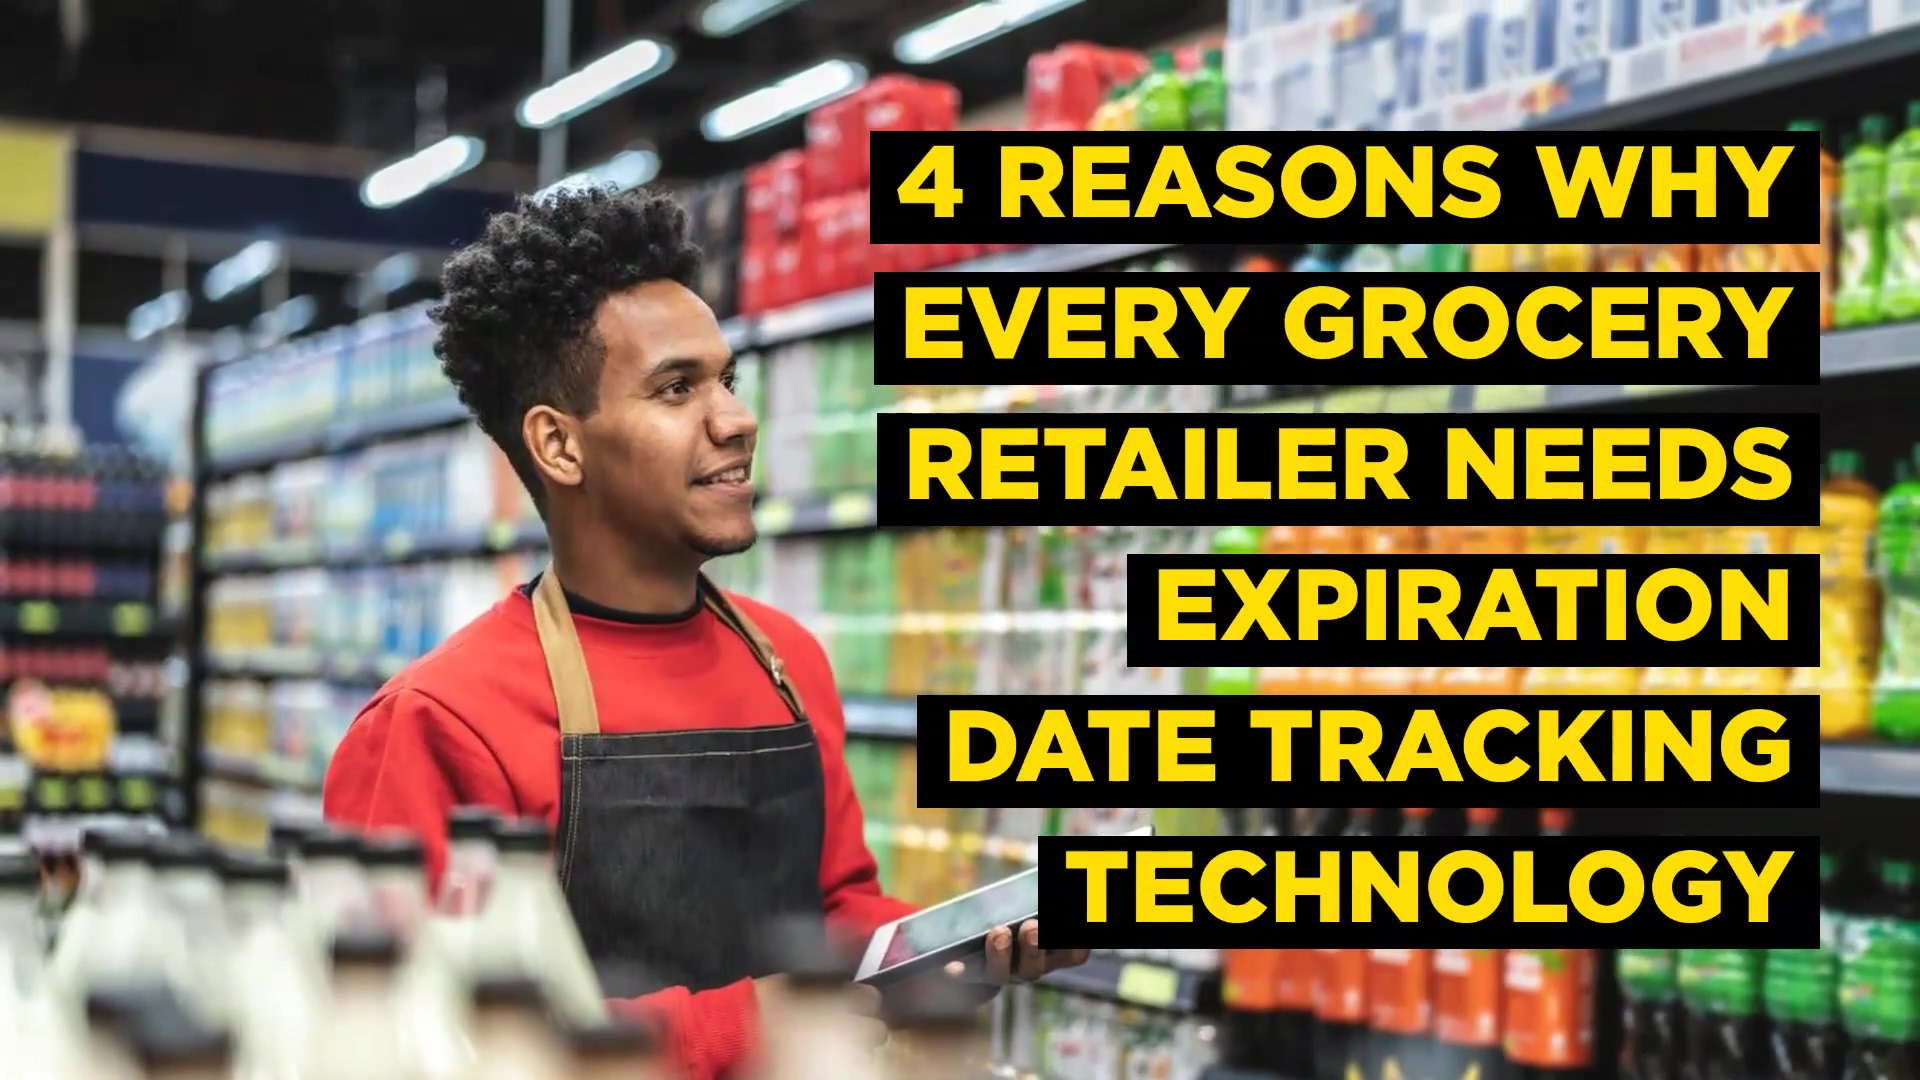 4_REASONS_WHY_EVERY_GROCERY_RE-1